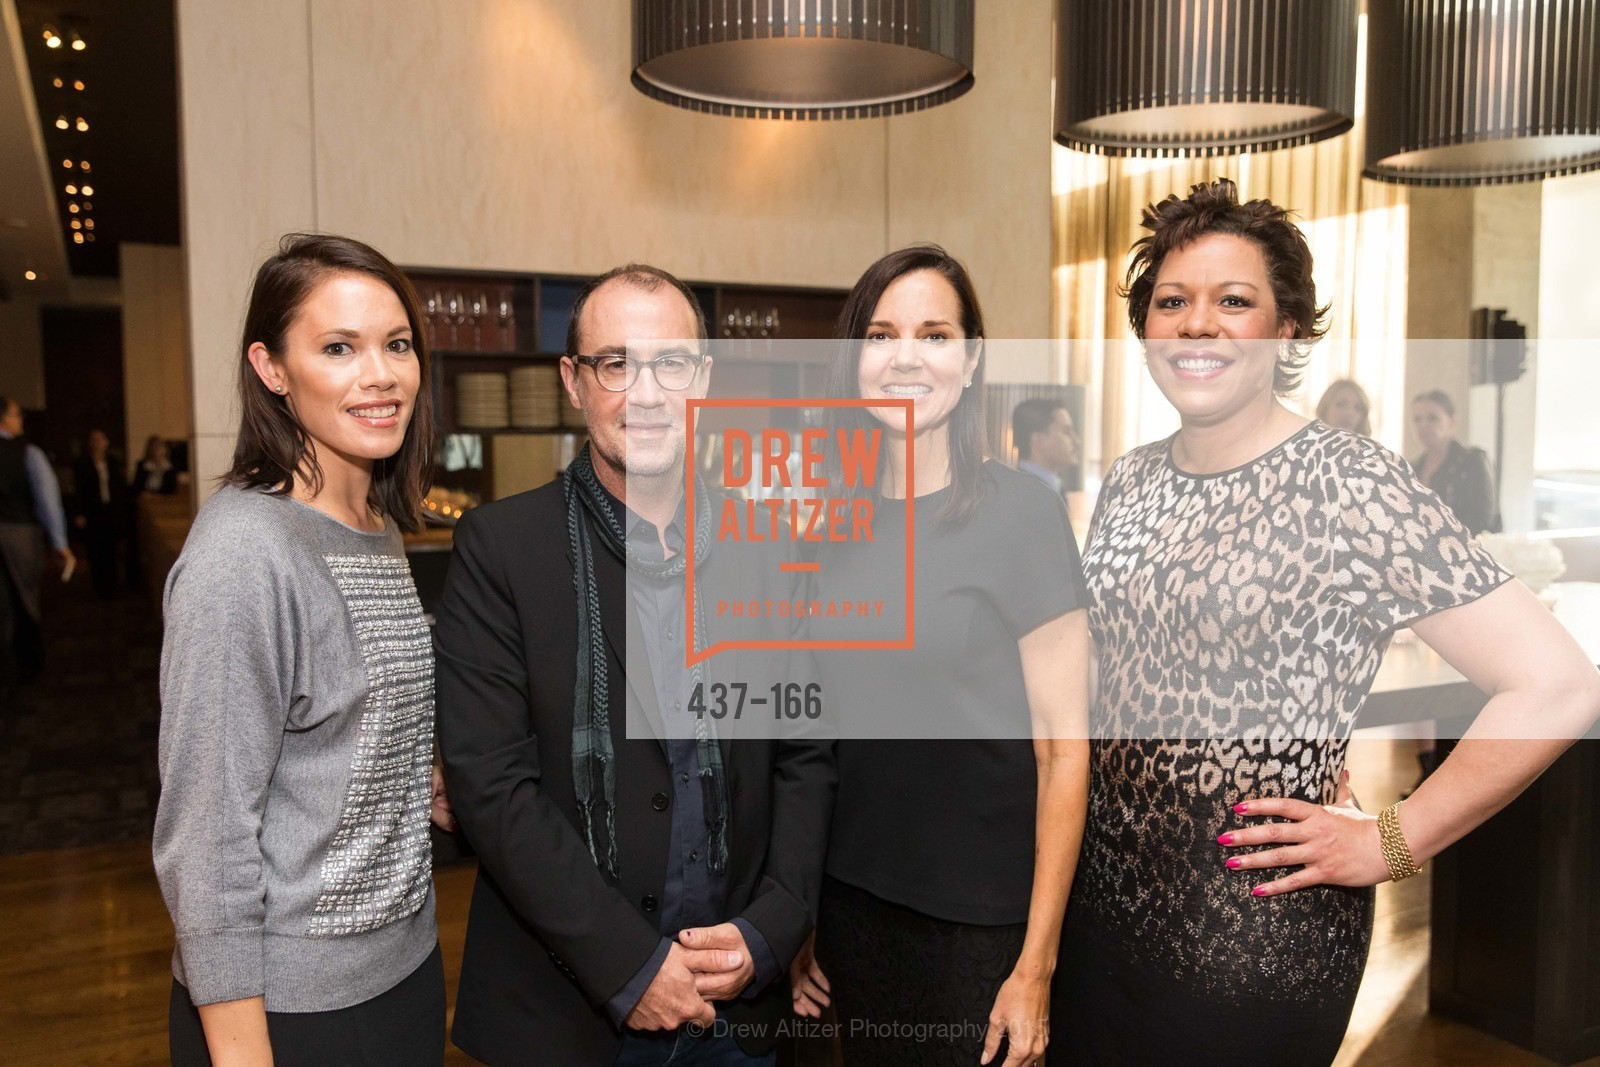 Jenelle Seltzer, Greg Myler, Tiffany Anastasakis, Michelle Jacobson, Elle Women in Tech, Prospect. 300 Spear Street, June 15th, 2015,Drew Altizer, Drew Altizer Photography, full-service agency, private events, San Francisco photographer, photographer california